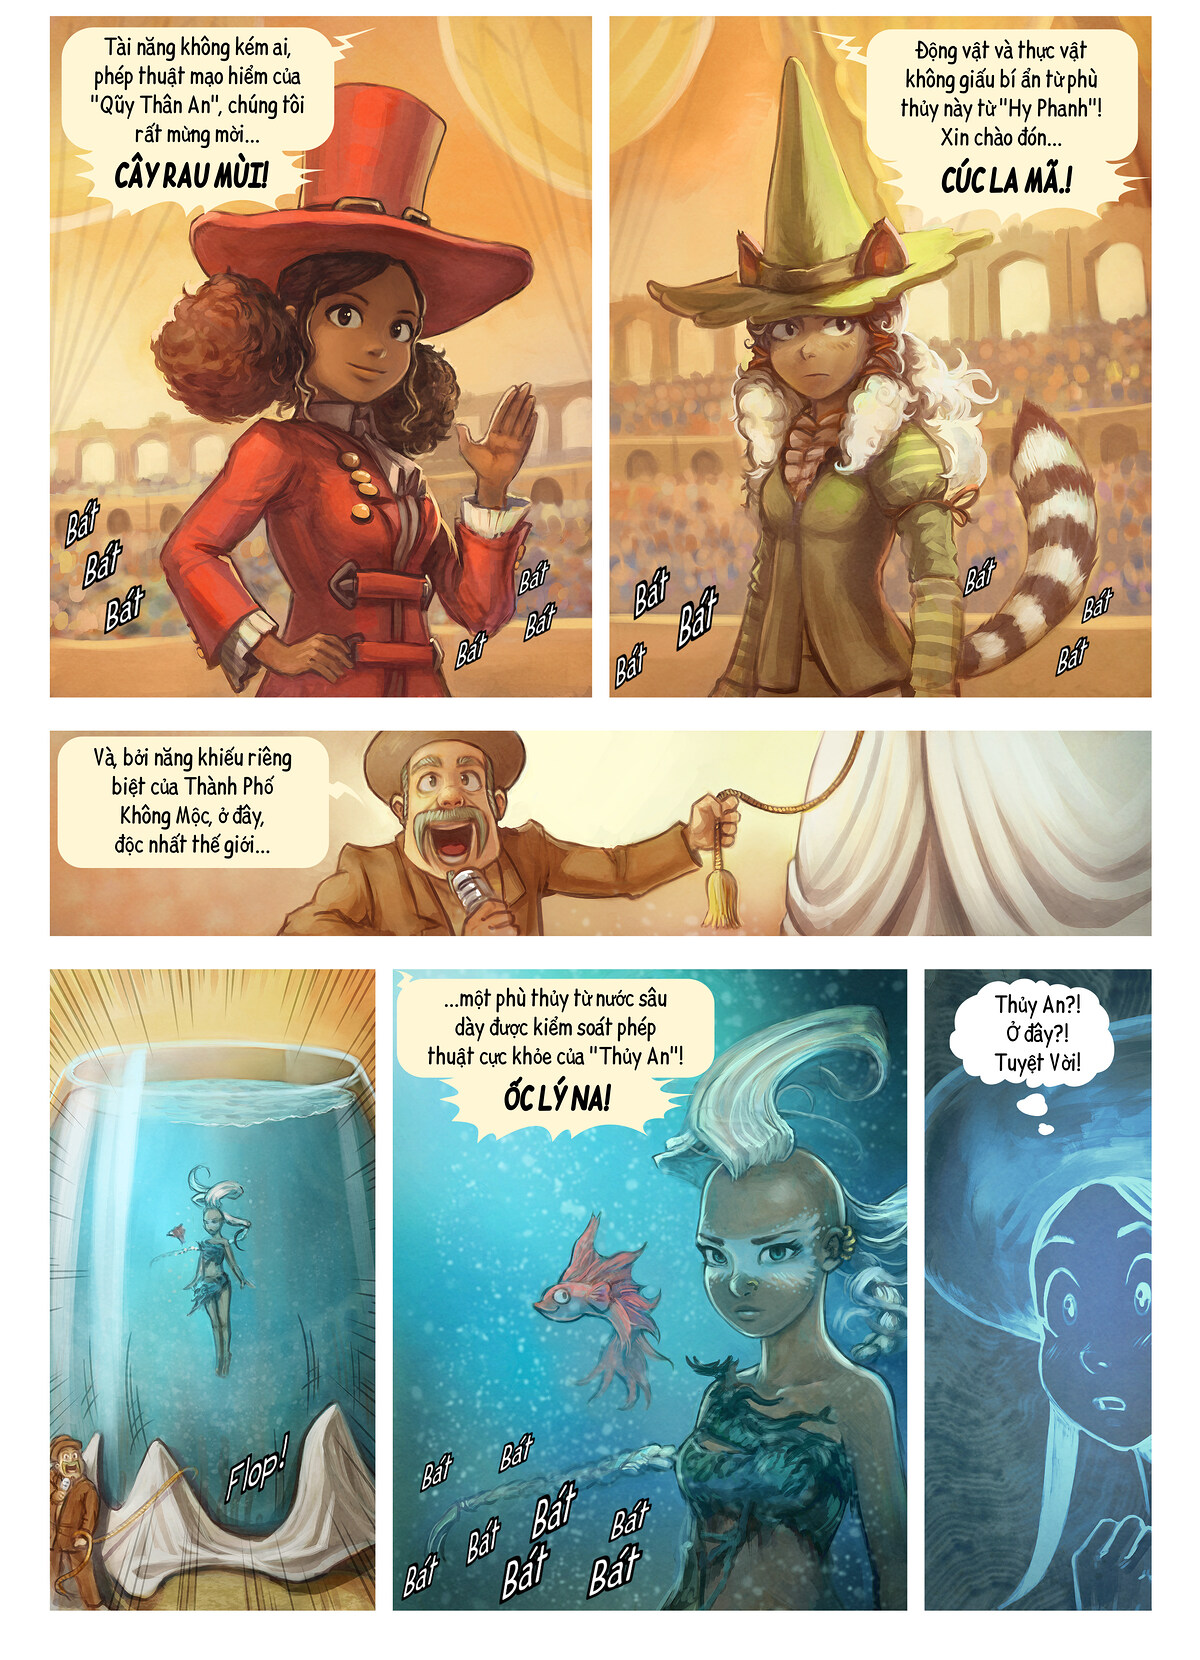 A webcomic page of Pepper&Carrot, Tập 21 [vi], trang 4